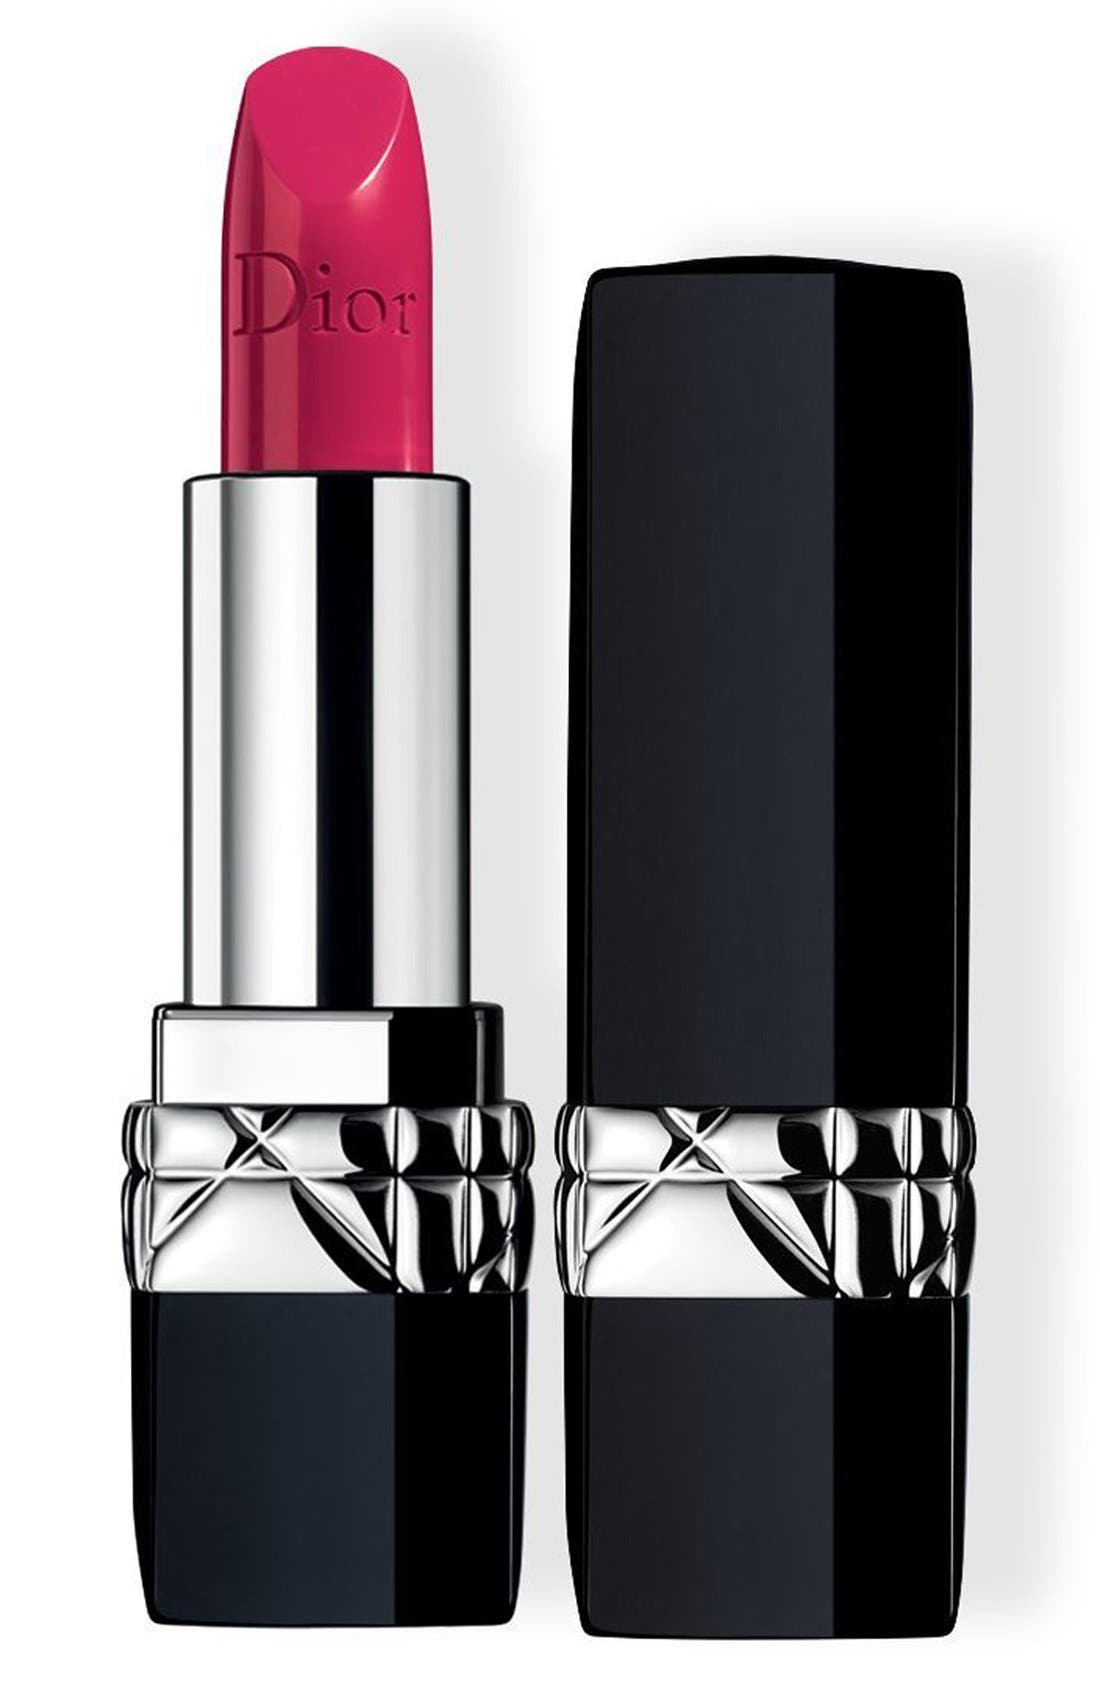 Dior Couture Color Rouge Dior Lipstick - 766 Rose Harpers